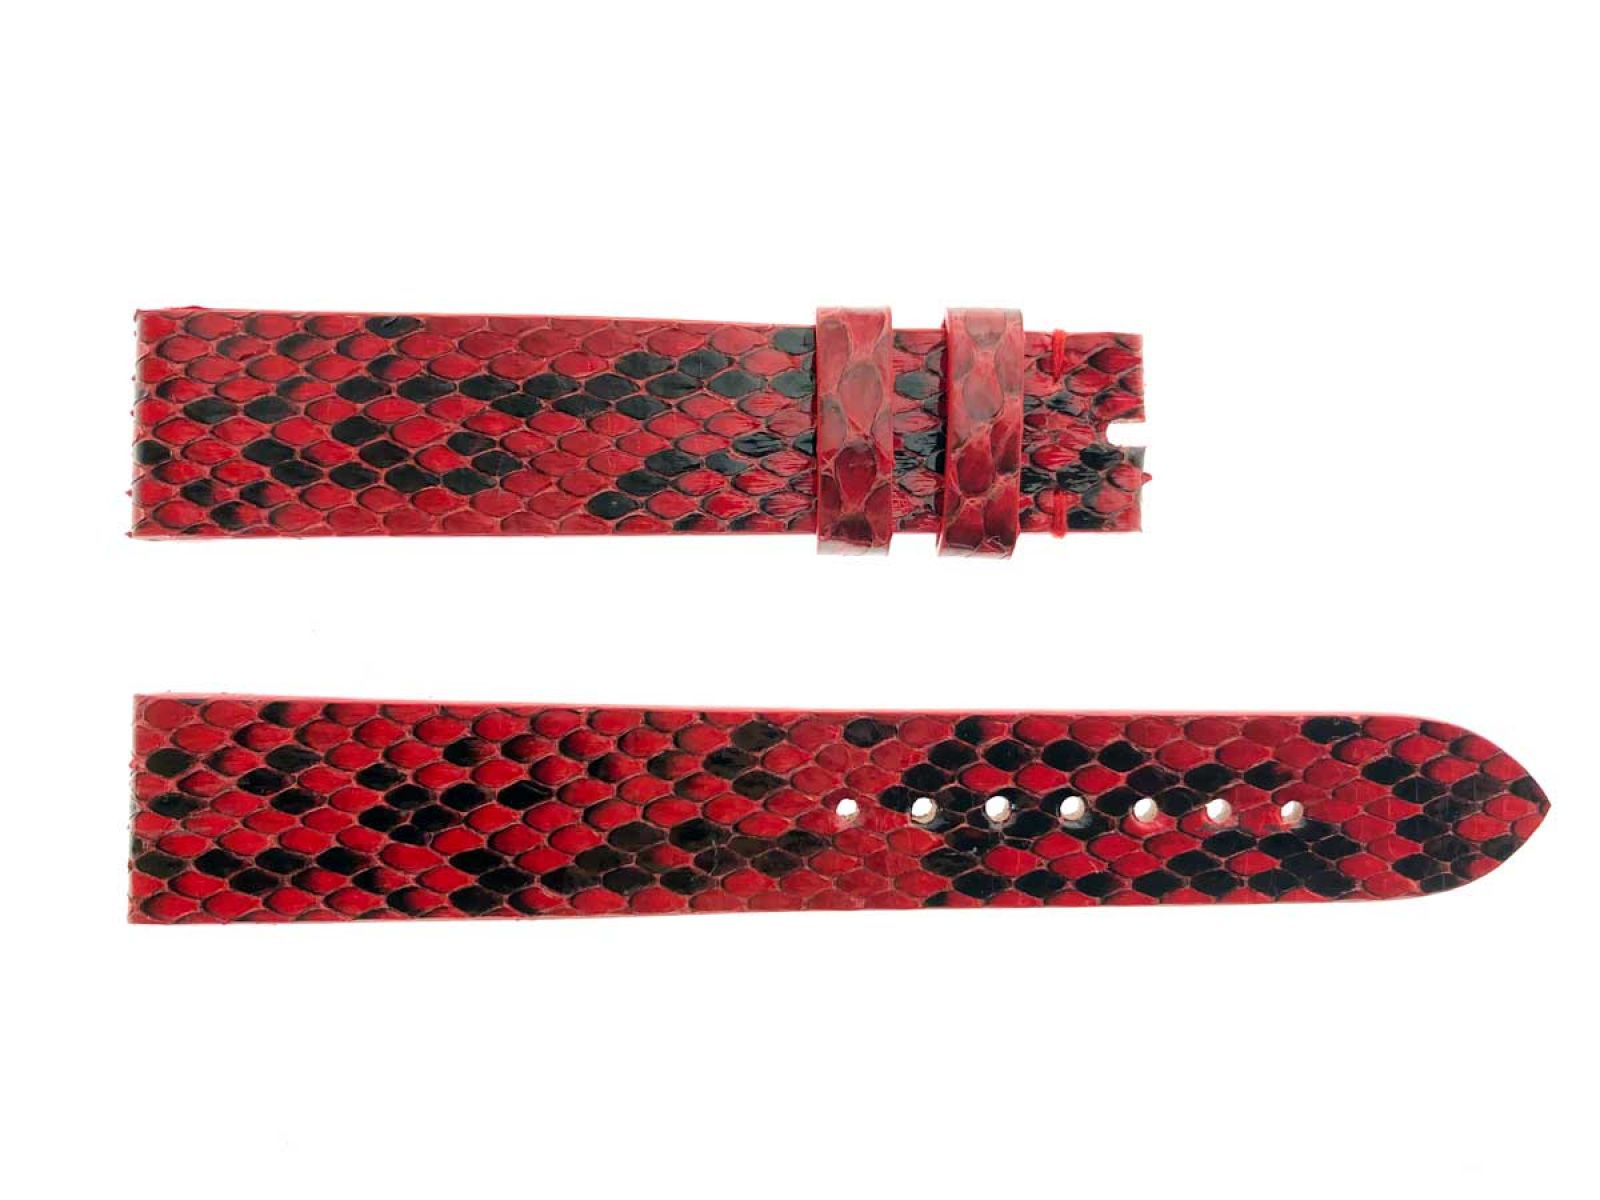 Red Gloss Python Leather Strap 16mm, 18mm, 19mm, 20mm, 21mm, 22mm General style